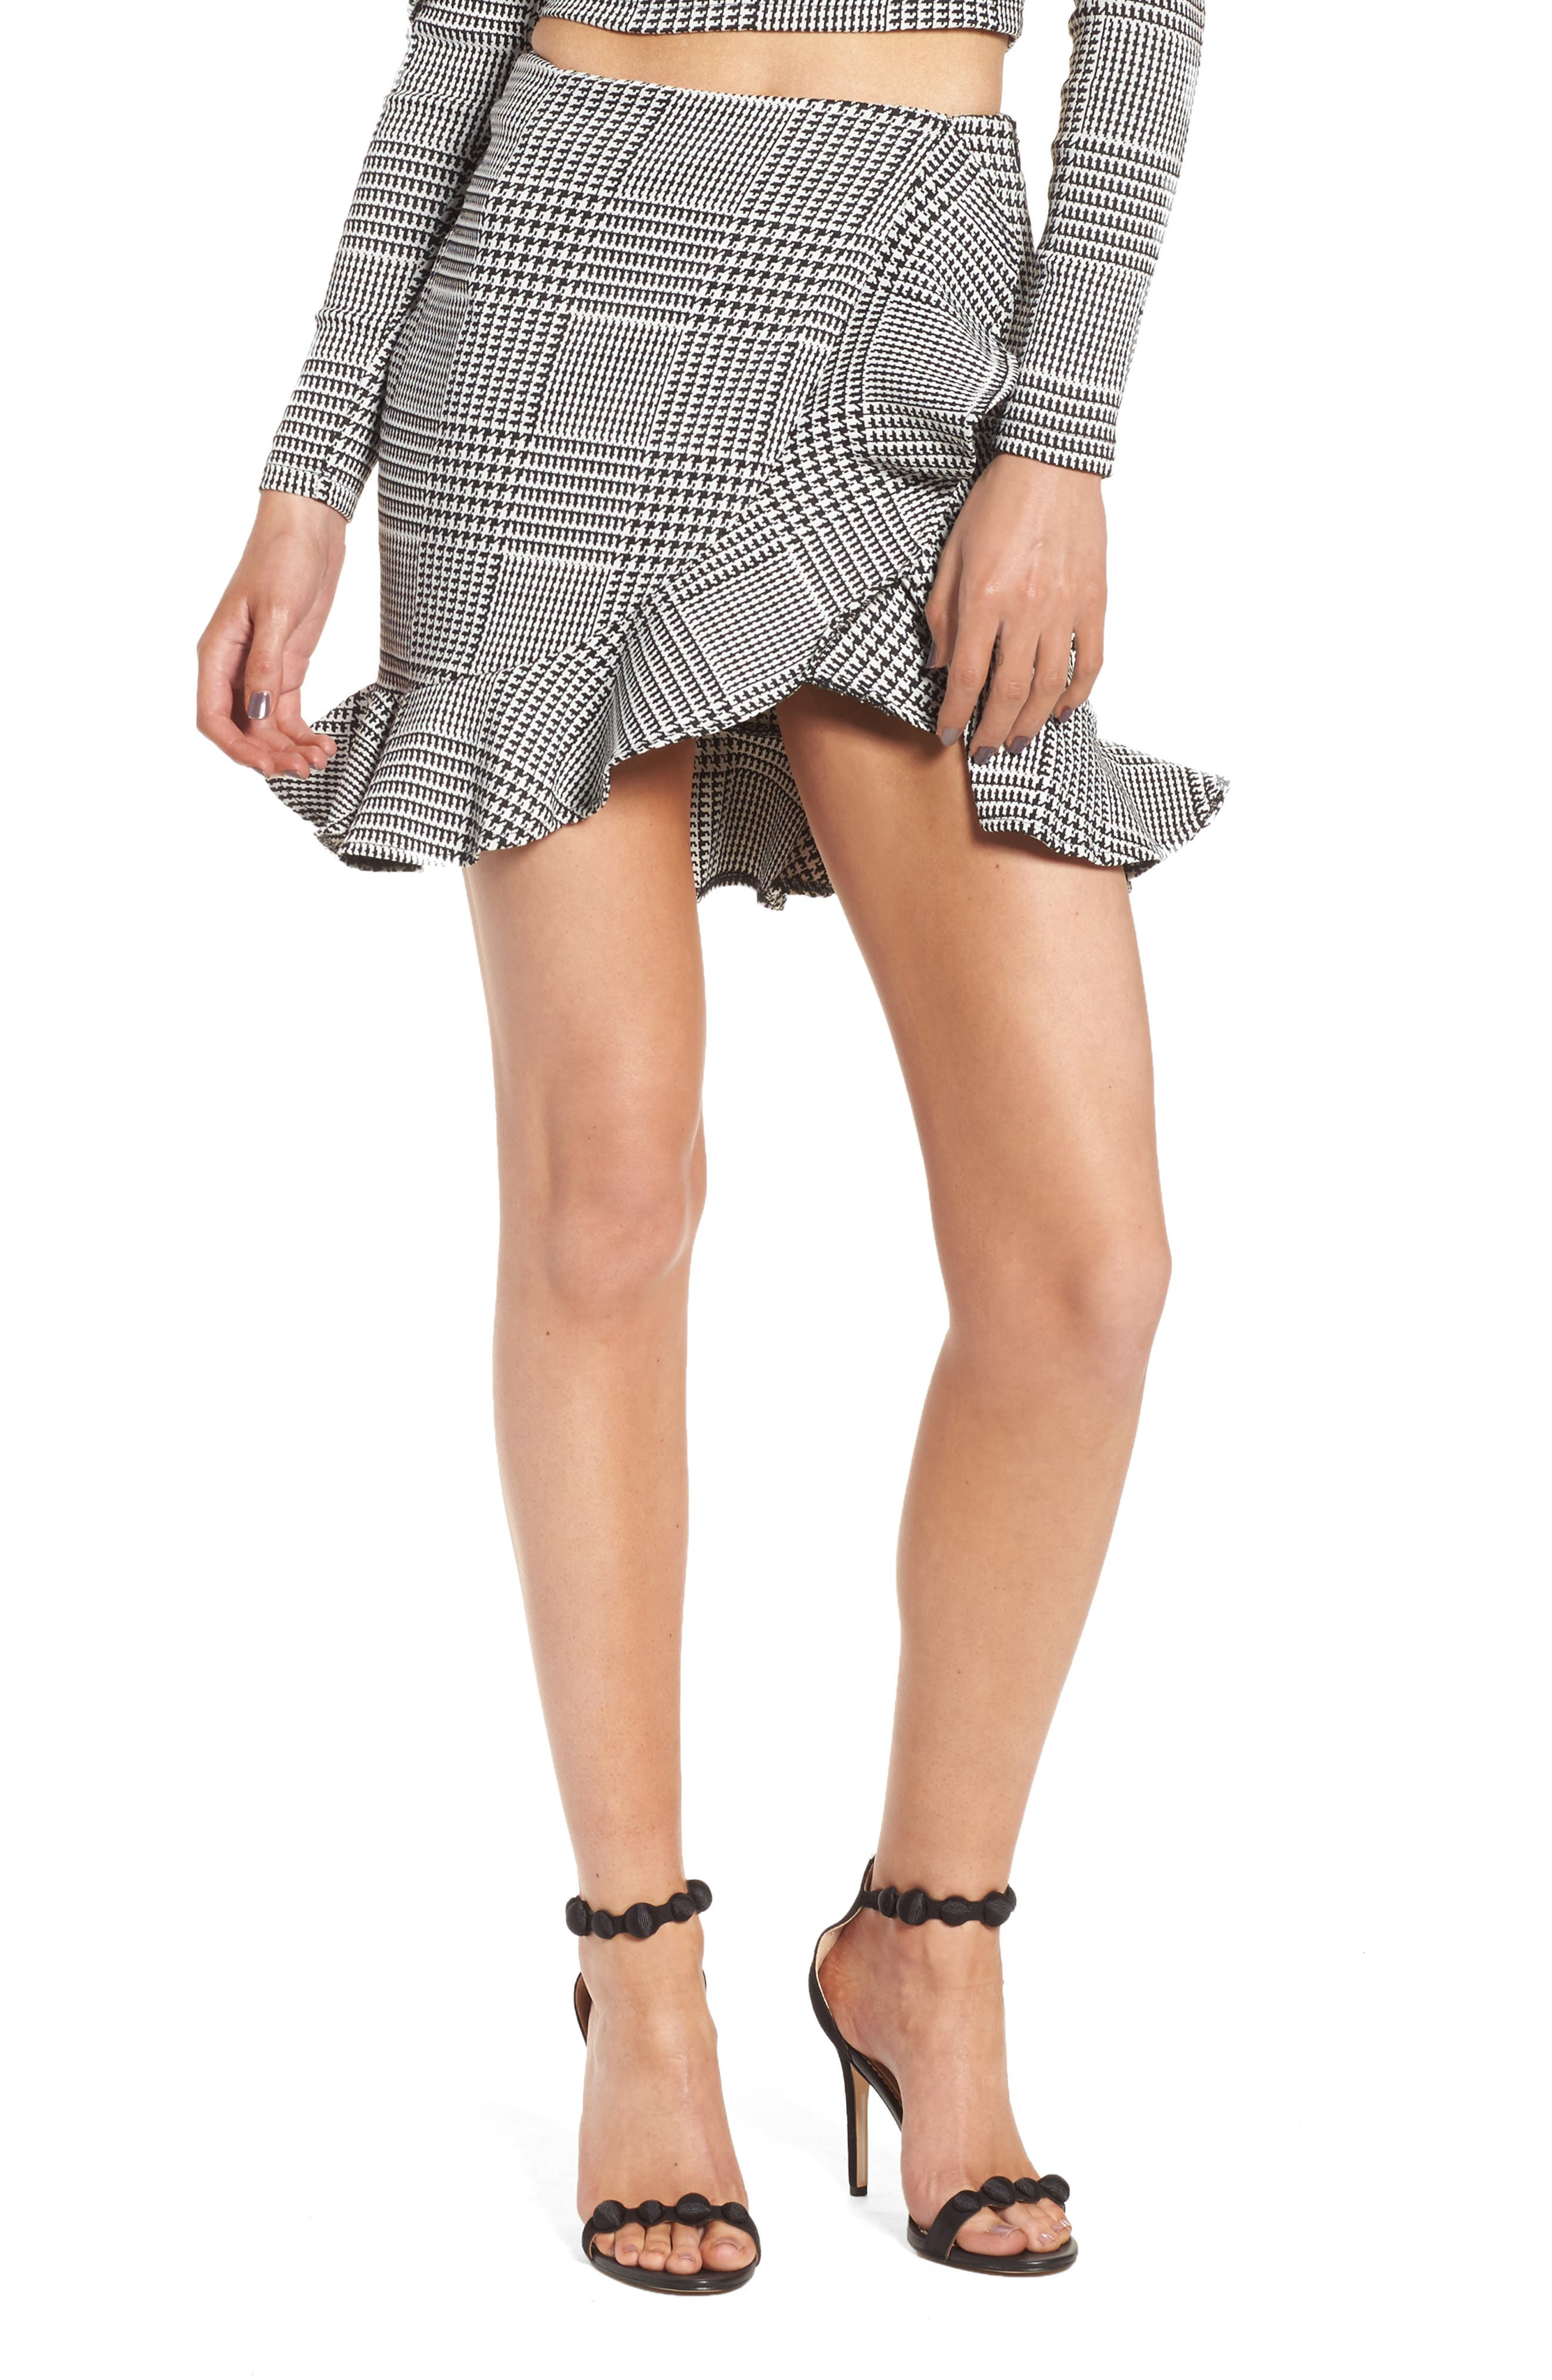 Affection Ruffle Houndstooth Skirt,                         Main,                         color, Houndstooth Plaid